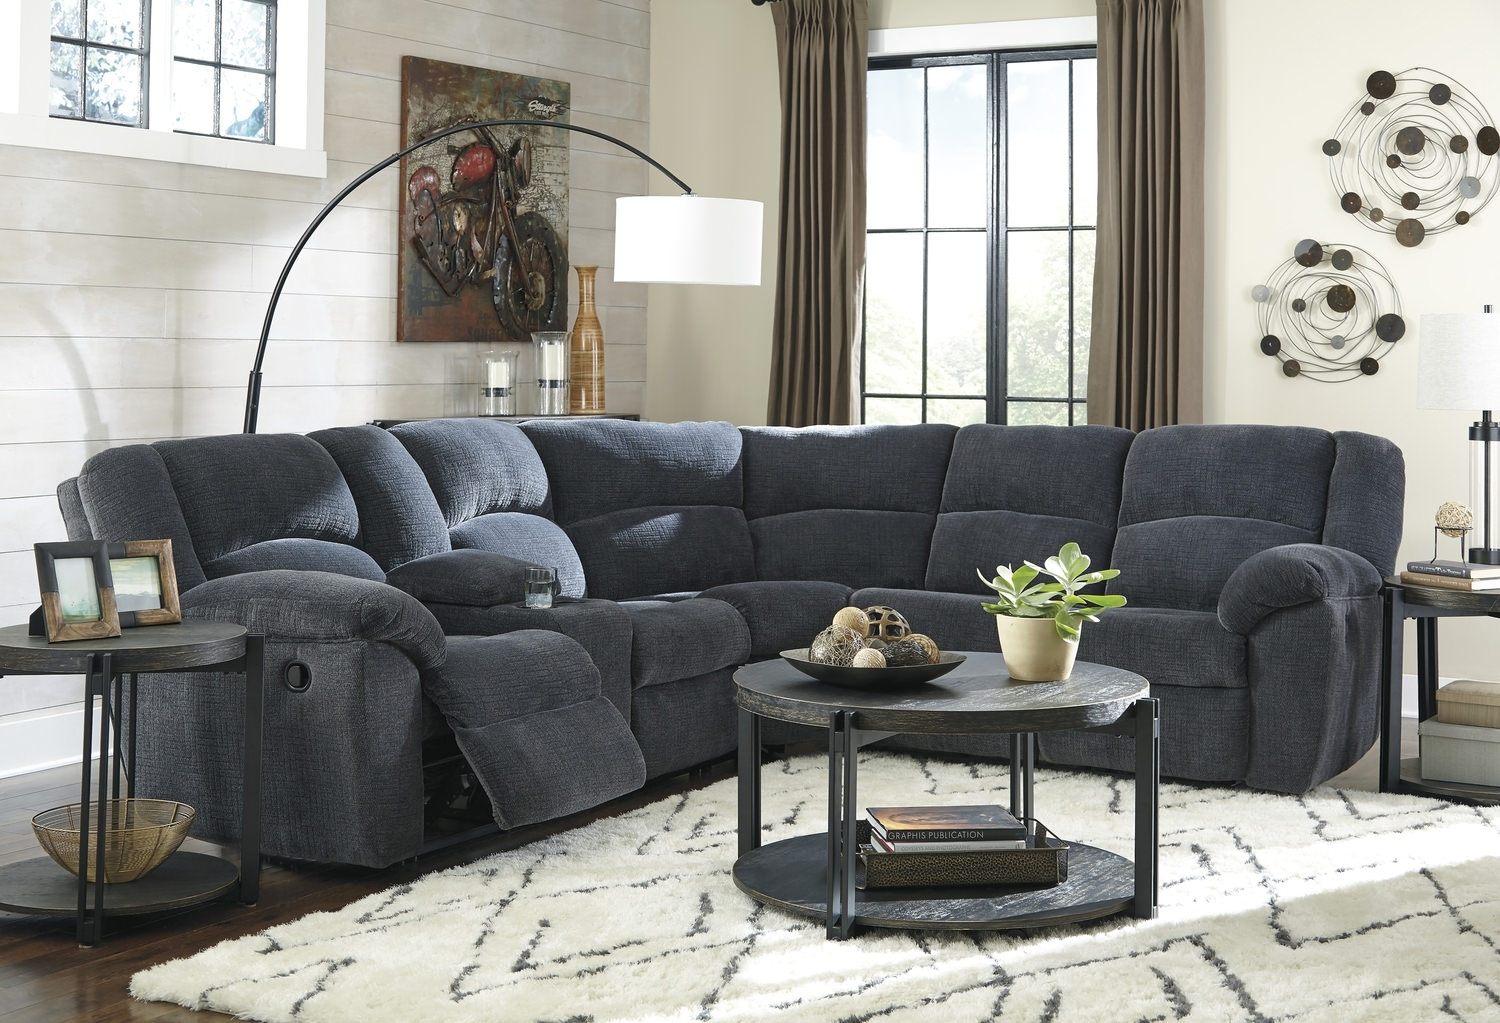 Texas 2 Piece Reclining Sectional | Hom Furniture Pertaining To St Cloud Mn Sectional Sofas (View 9 of 10)